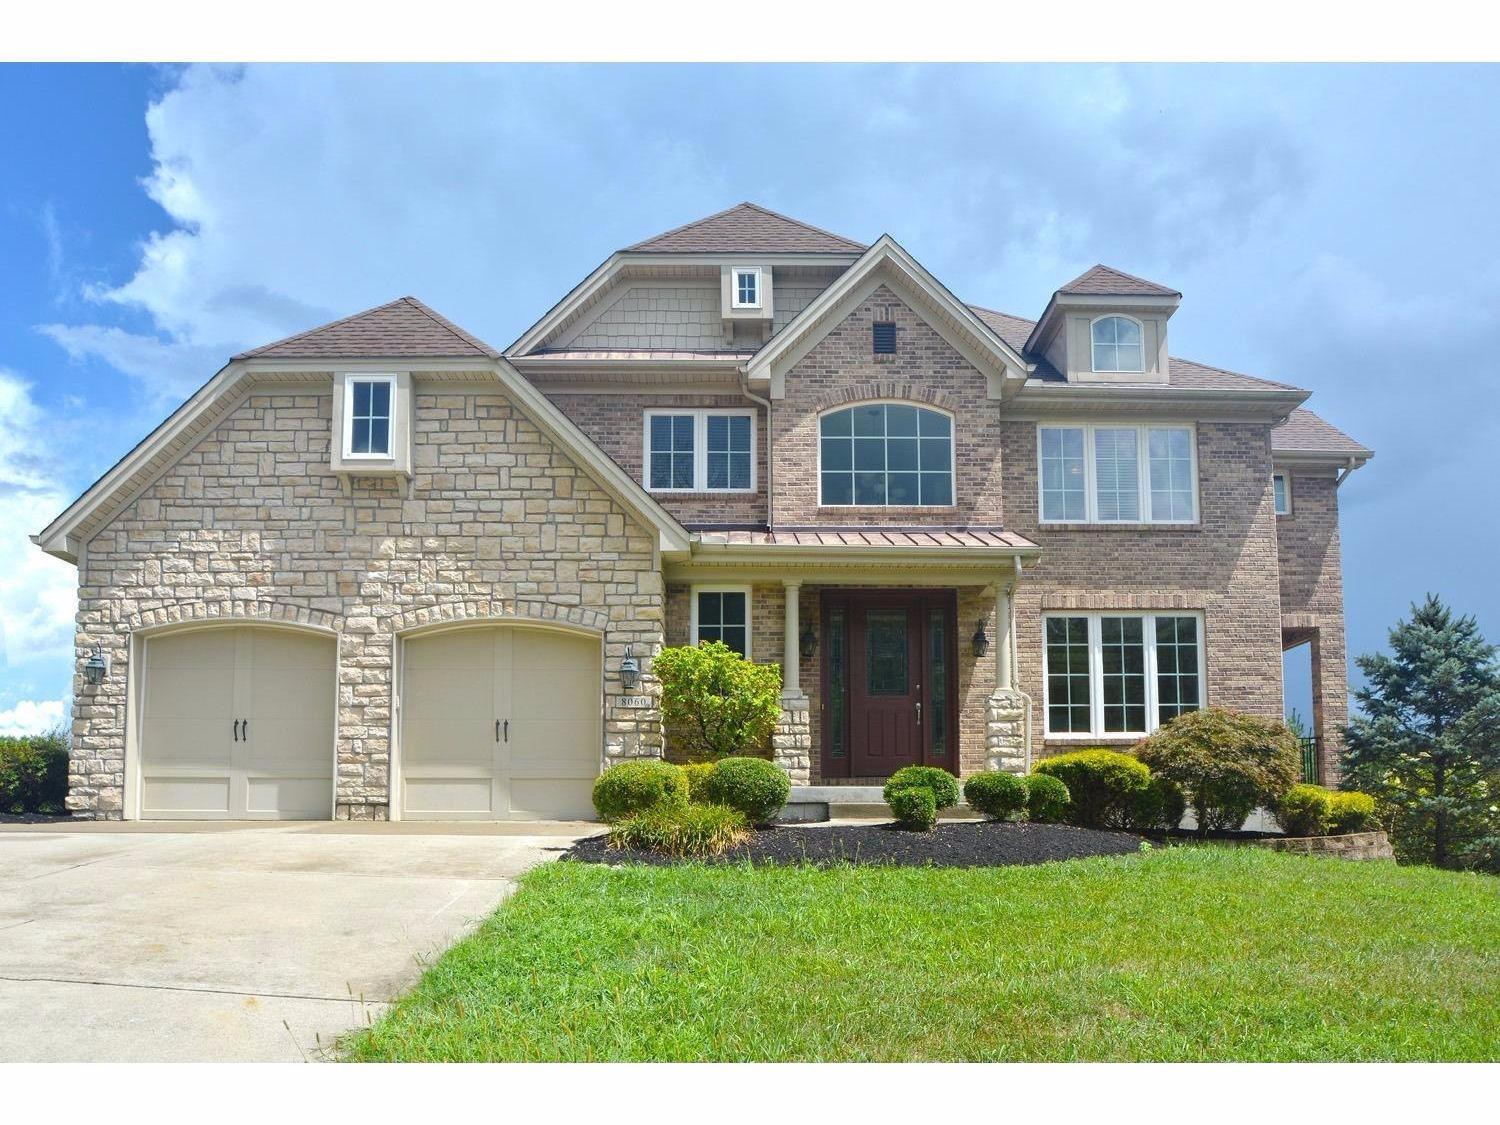 8060 River Vista Ct Deerfield Twp., OH